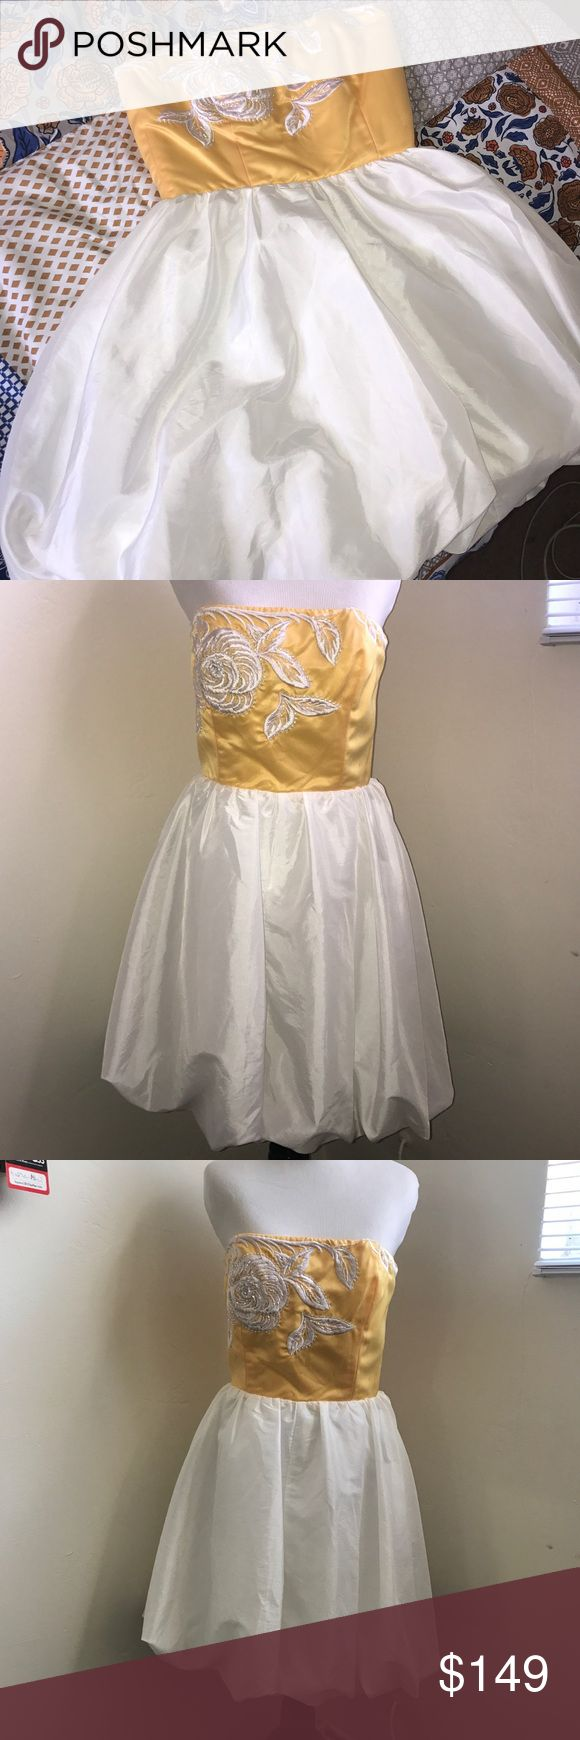 Betsey Johnson Yellow and White Party Dress Super chic and fresh Betsey Johnson formal dress. Buttercup yellow bodice and pearlized white balloon effect skirt. Fantastic embroidered floral detail on bodice with beading. Hits above the knee. Perfect for parties, weddings, proms, and any spring or summer event! Worn once but no longer fits me so it's time to let it go. Zipper works perfectly, but you could add the eyelet part of the hook/eye clasp for extra support. Otherwise, very good…